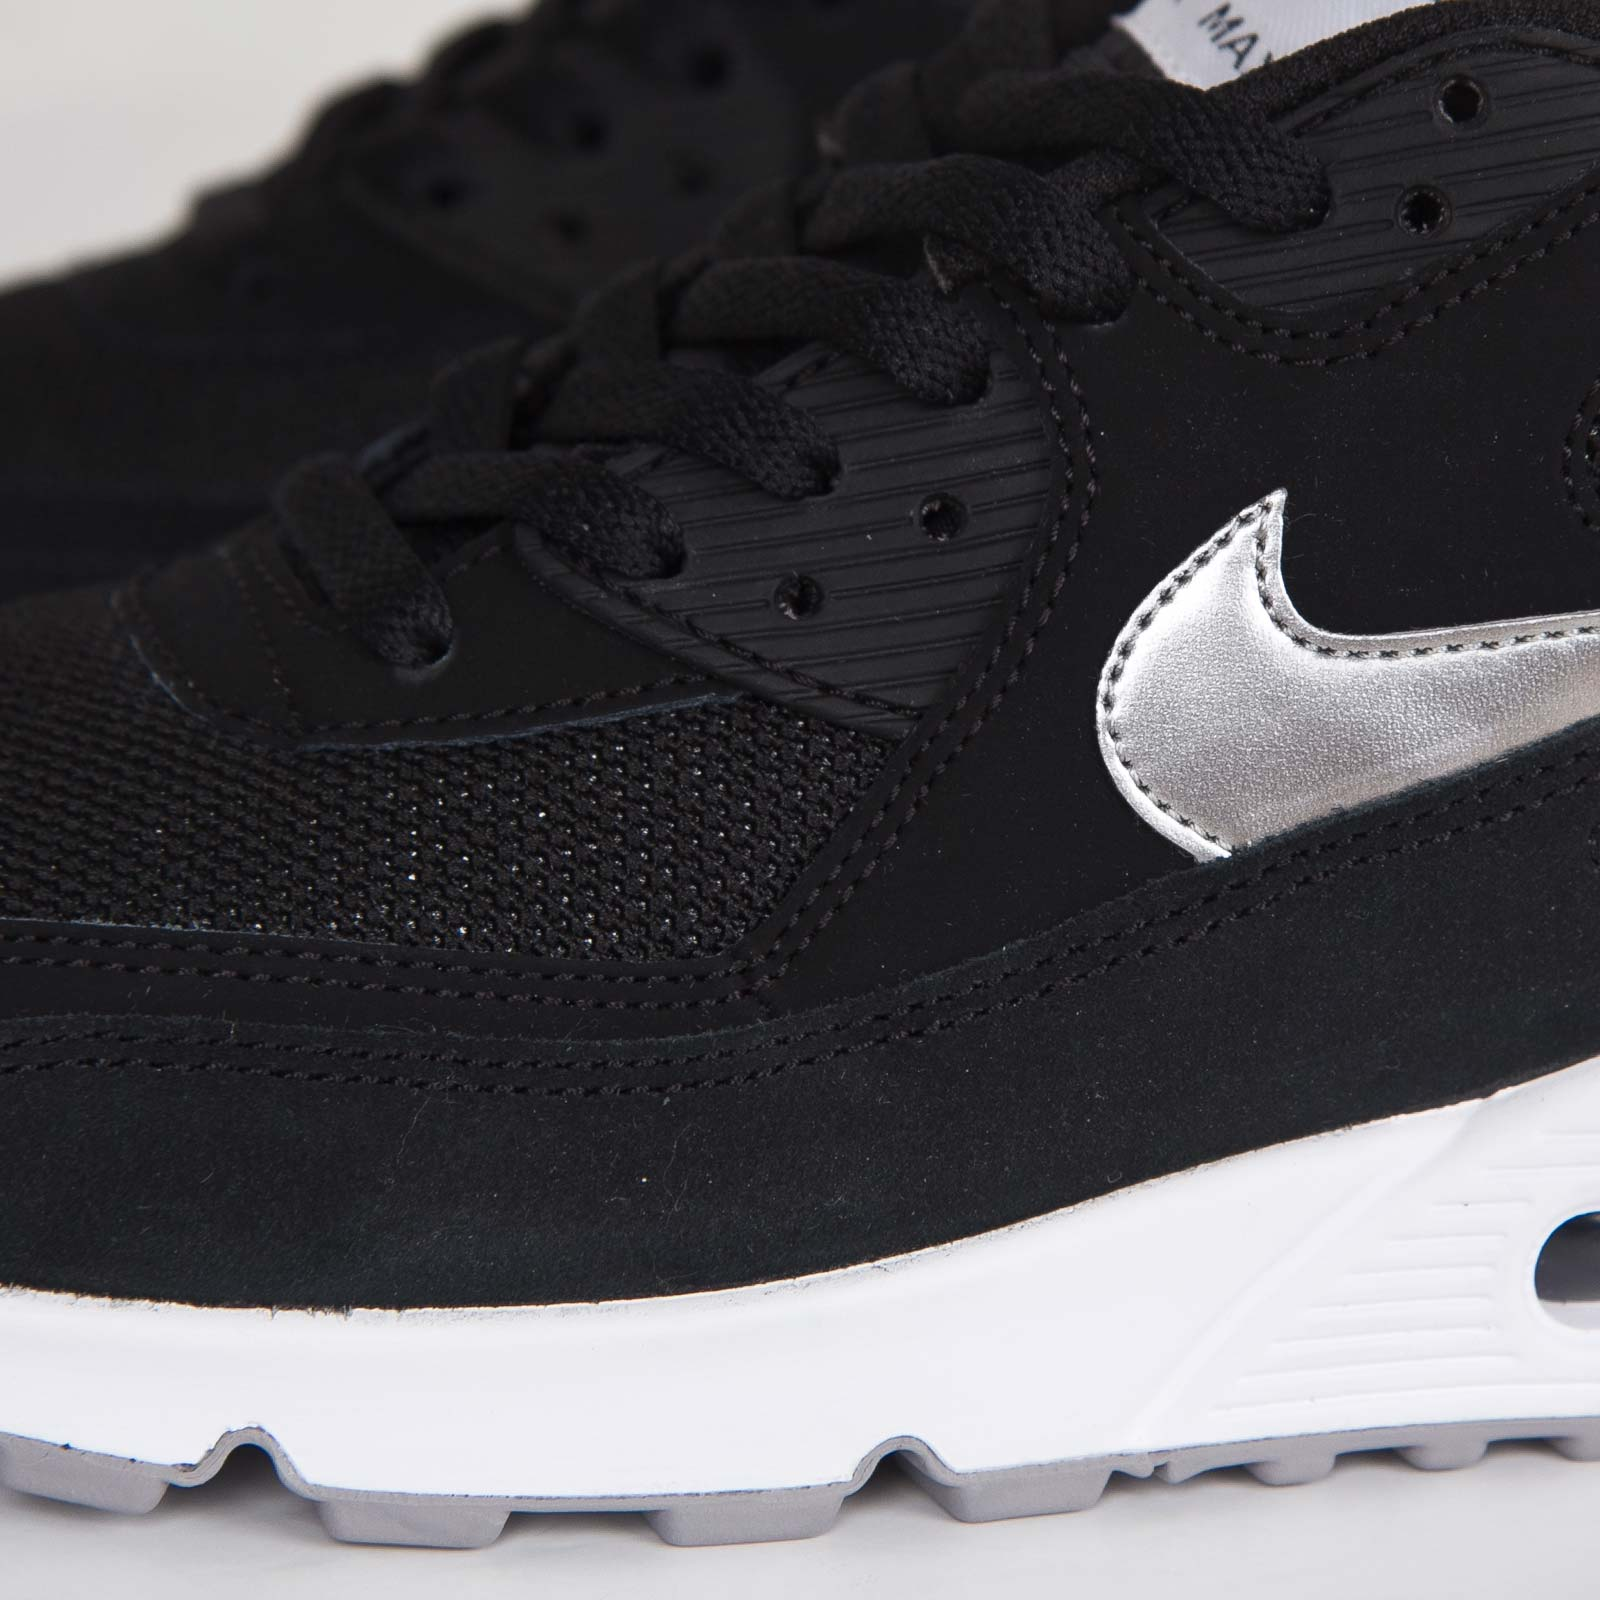 official photos 4c7a9 b7883 Nike Air Max 90 Essential - 537384-047 - Sneakersnstuff   sneakers    streetwear online since 1999